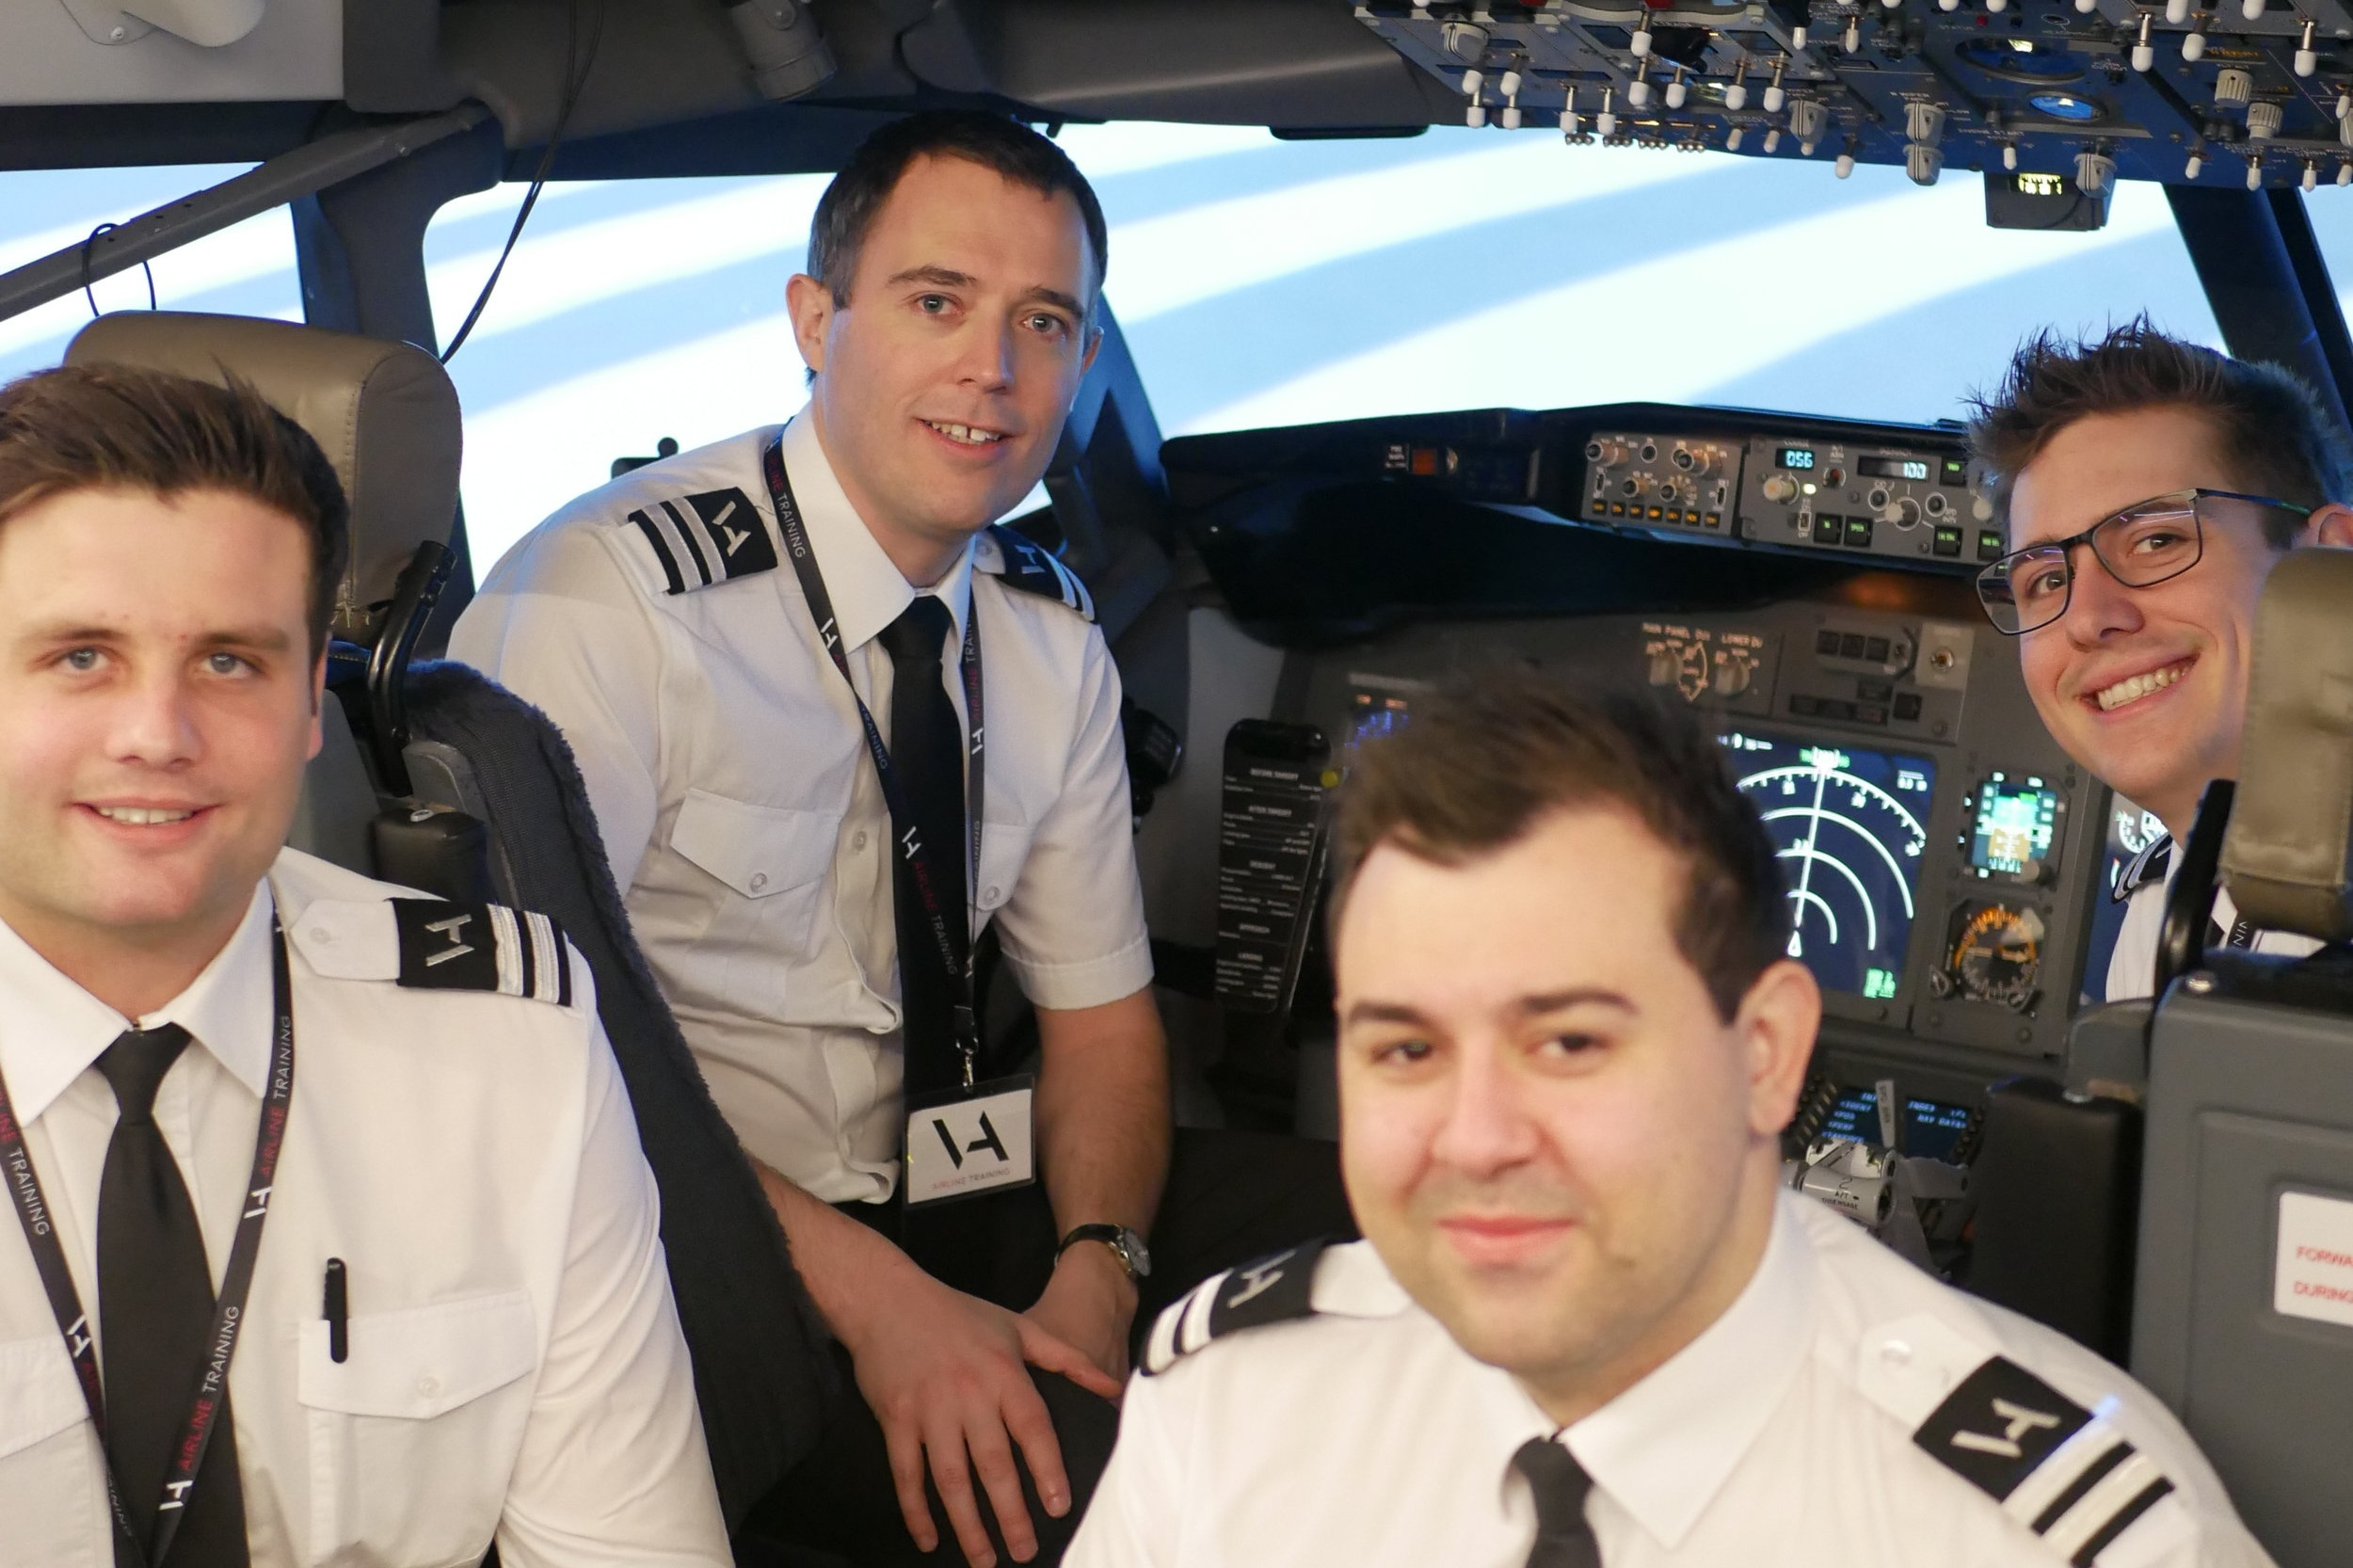 Ashton completed his APS MCC on the Boeing 737